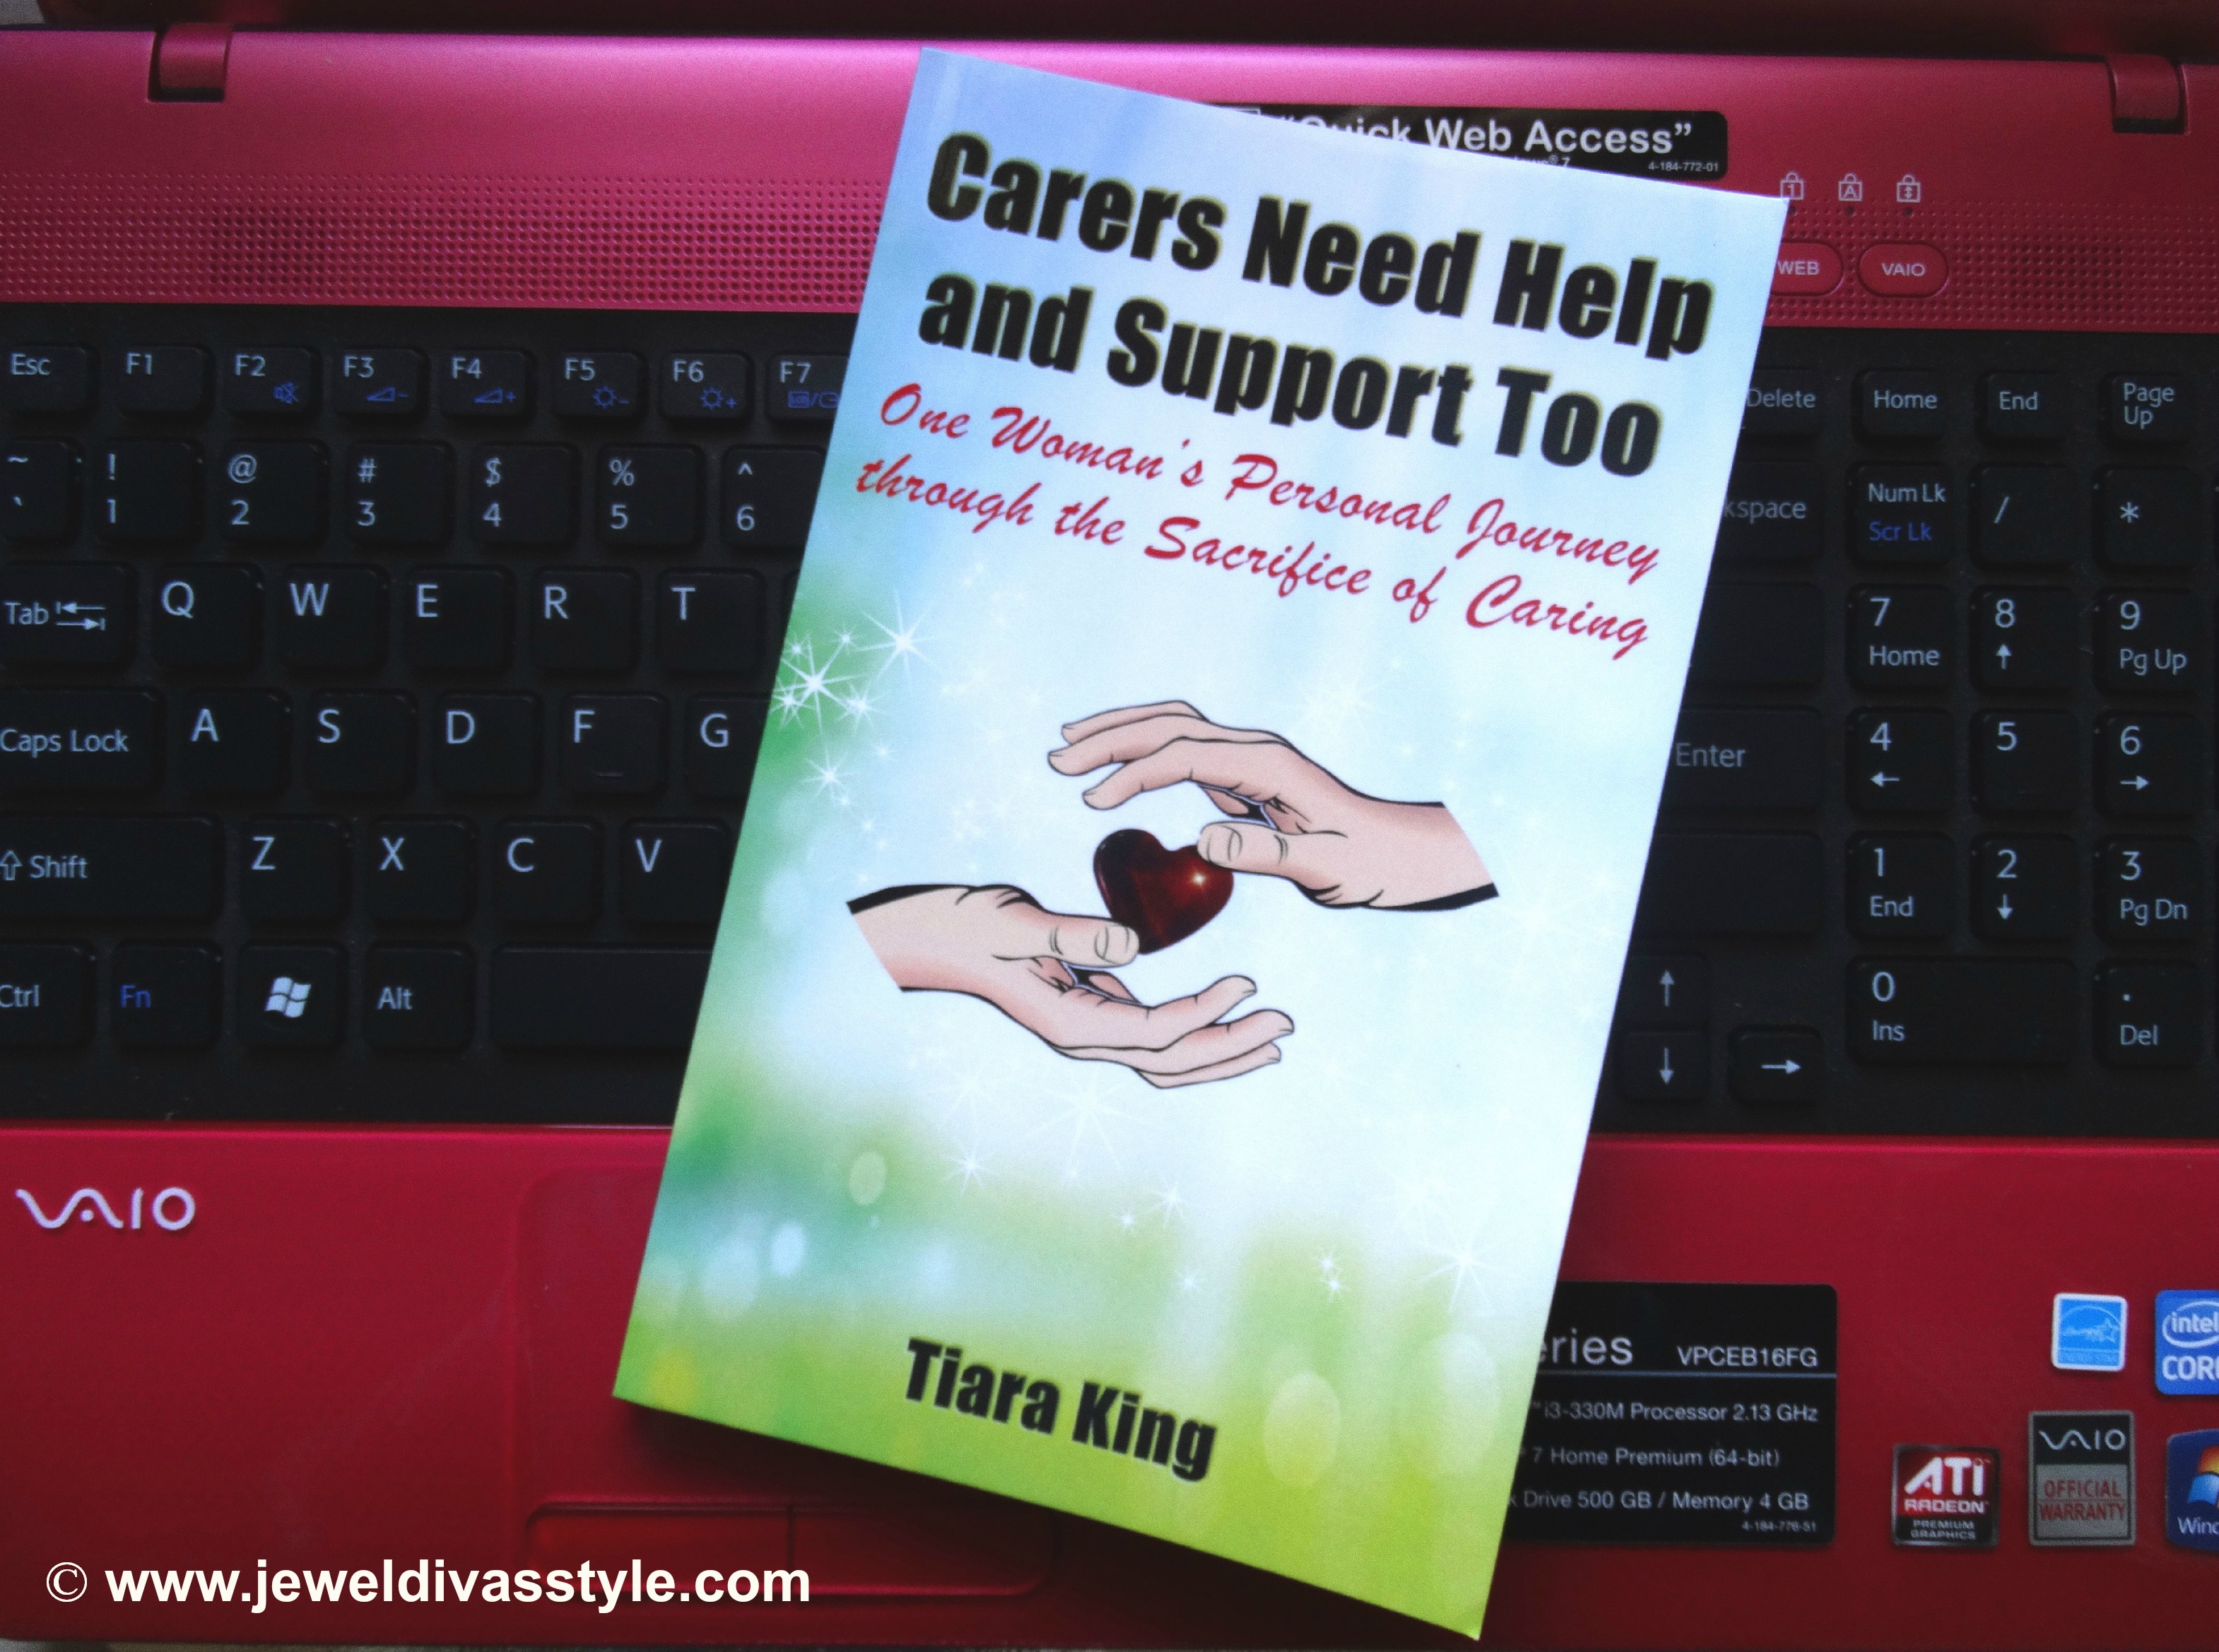 Tiara King Carers Need Help And Support Too